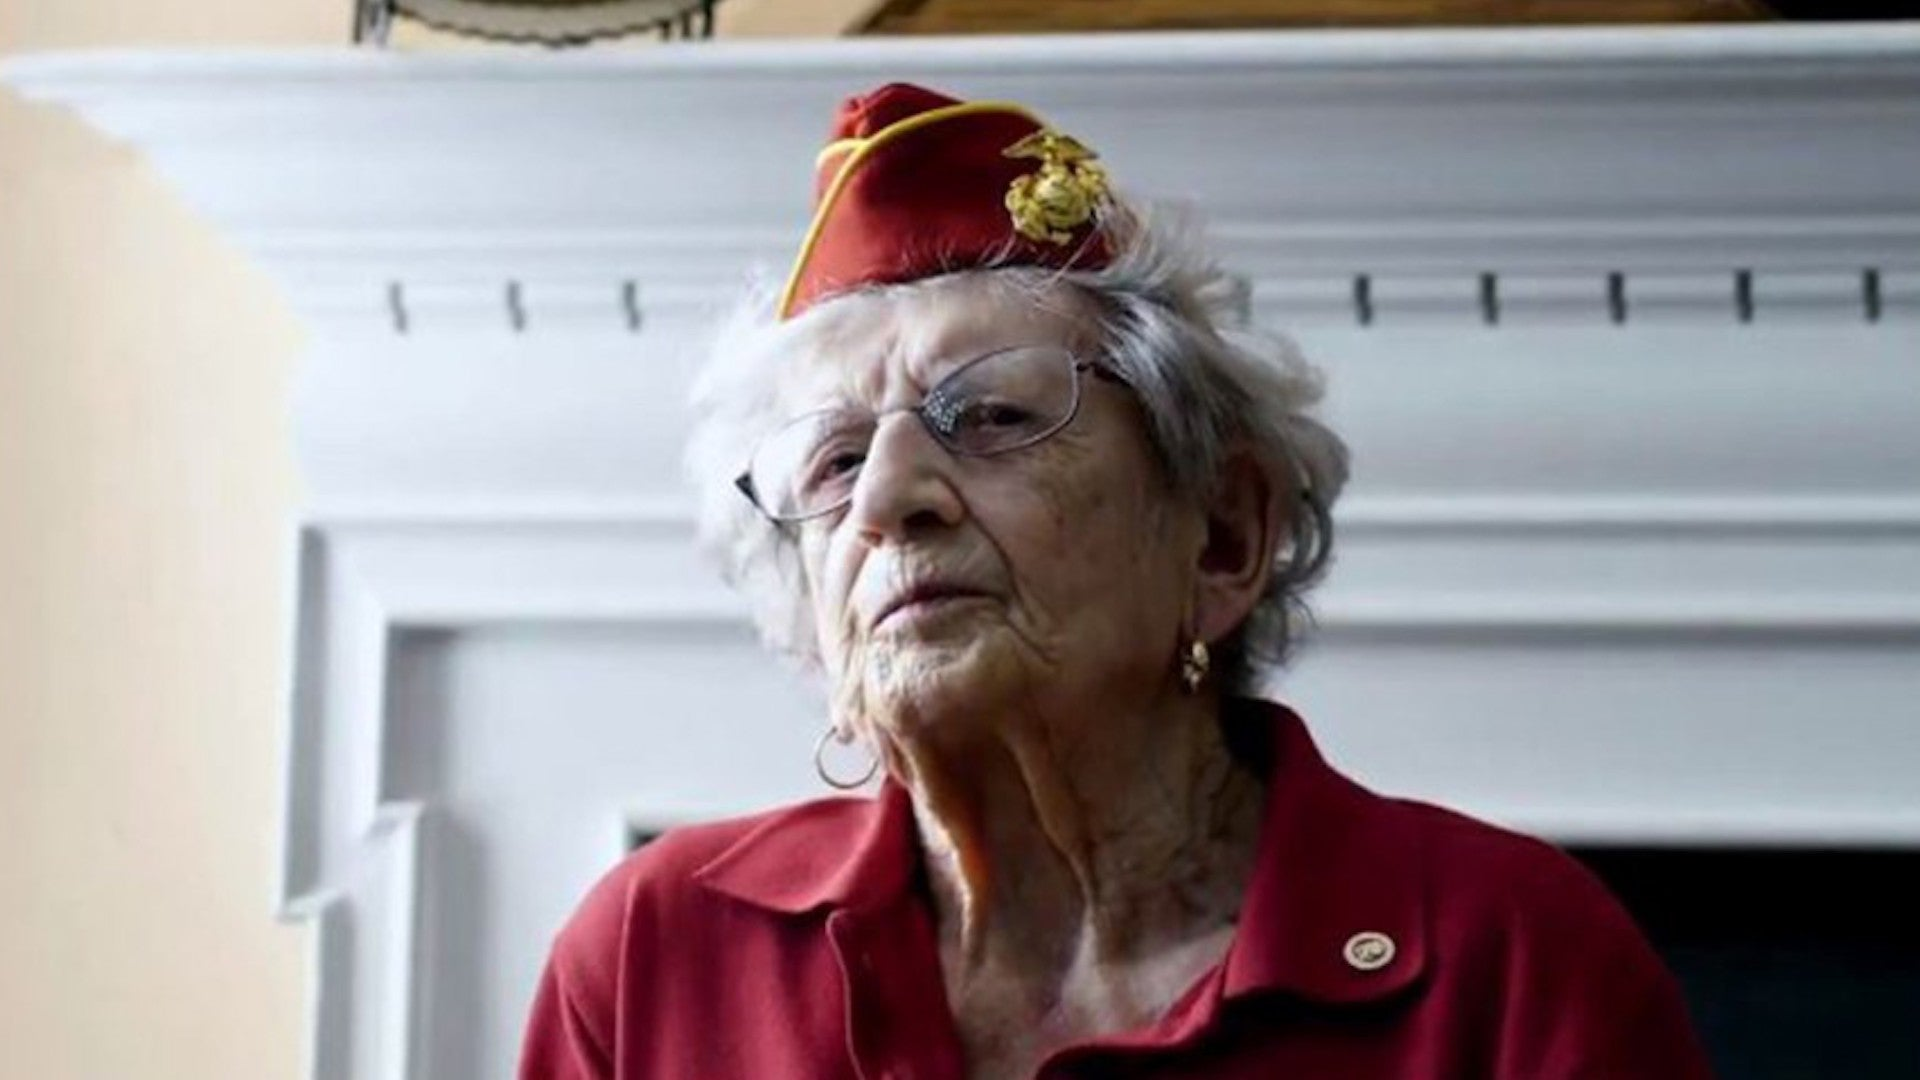 America's oldest living Marine, a trailblazer for women in the service, has died at 107